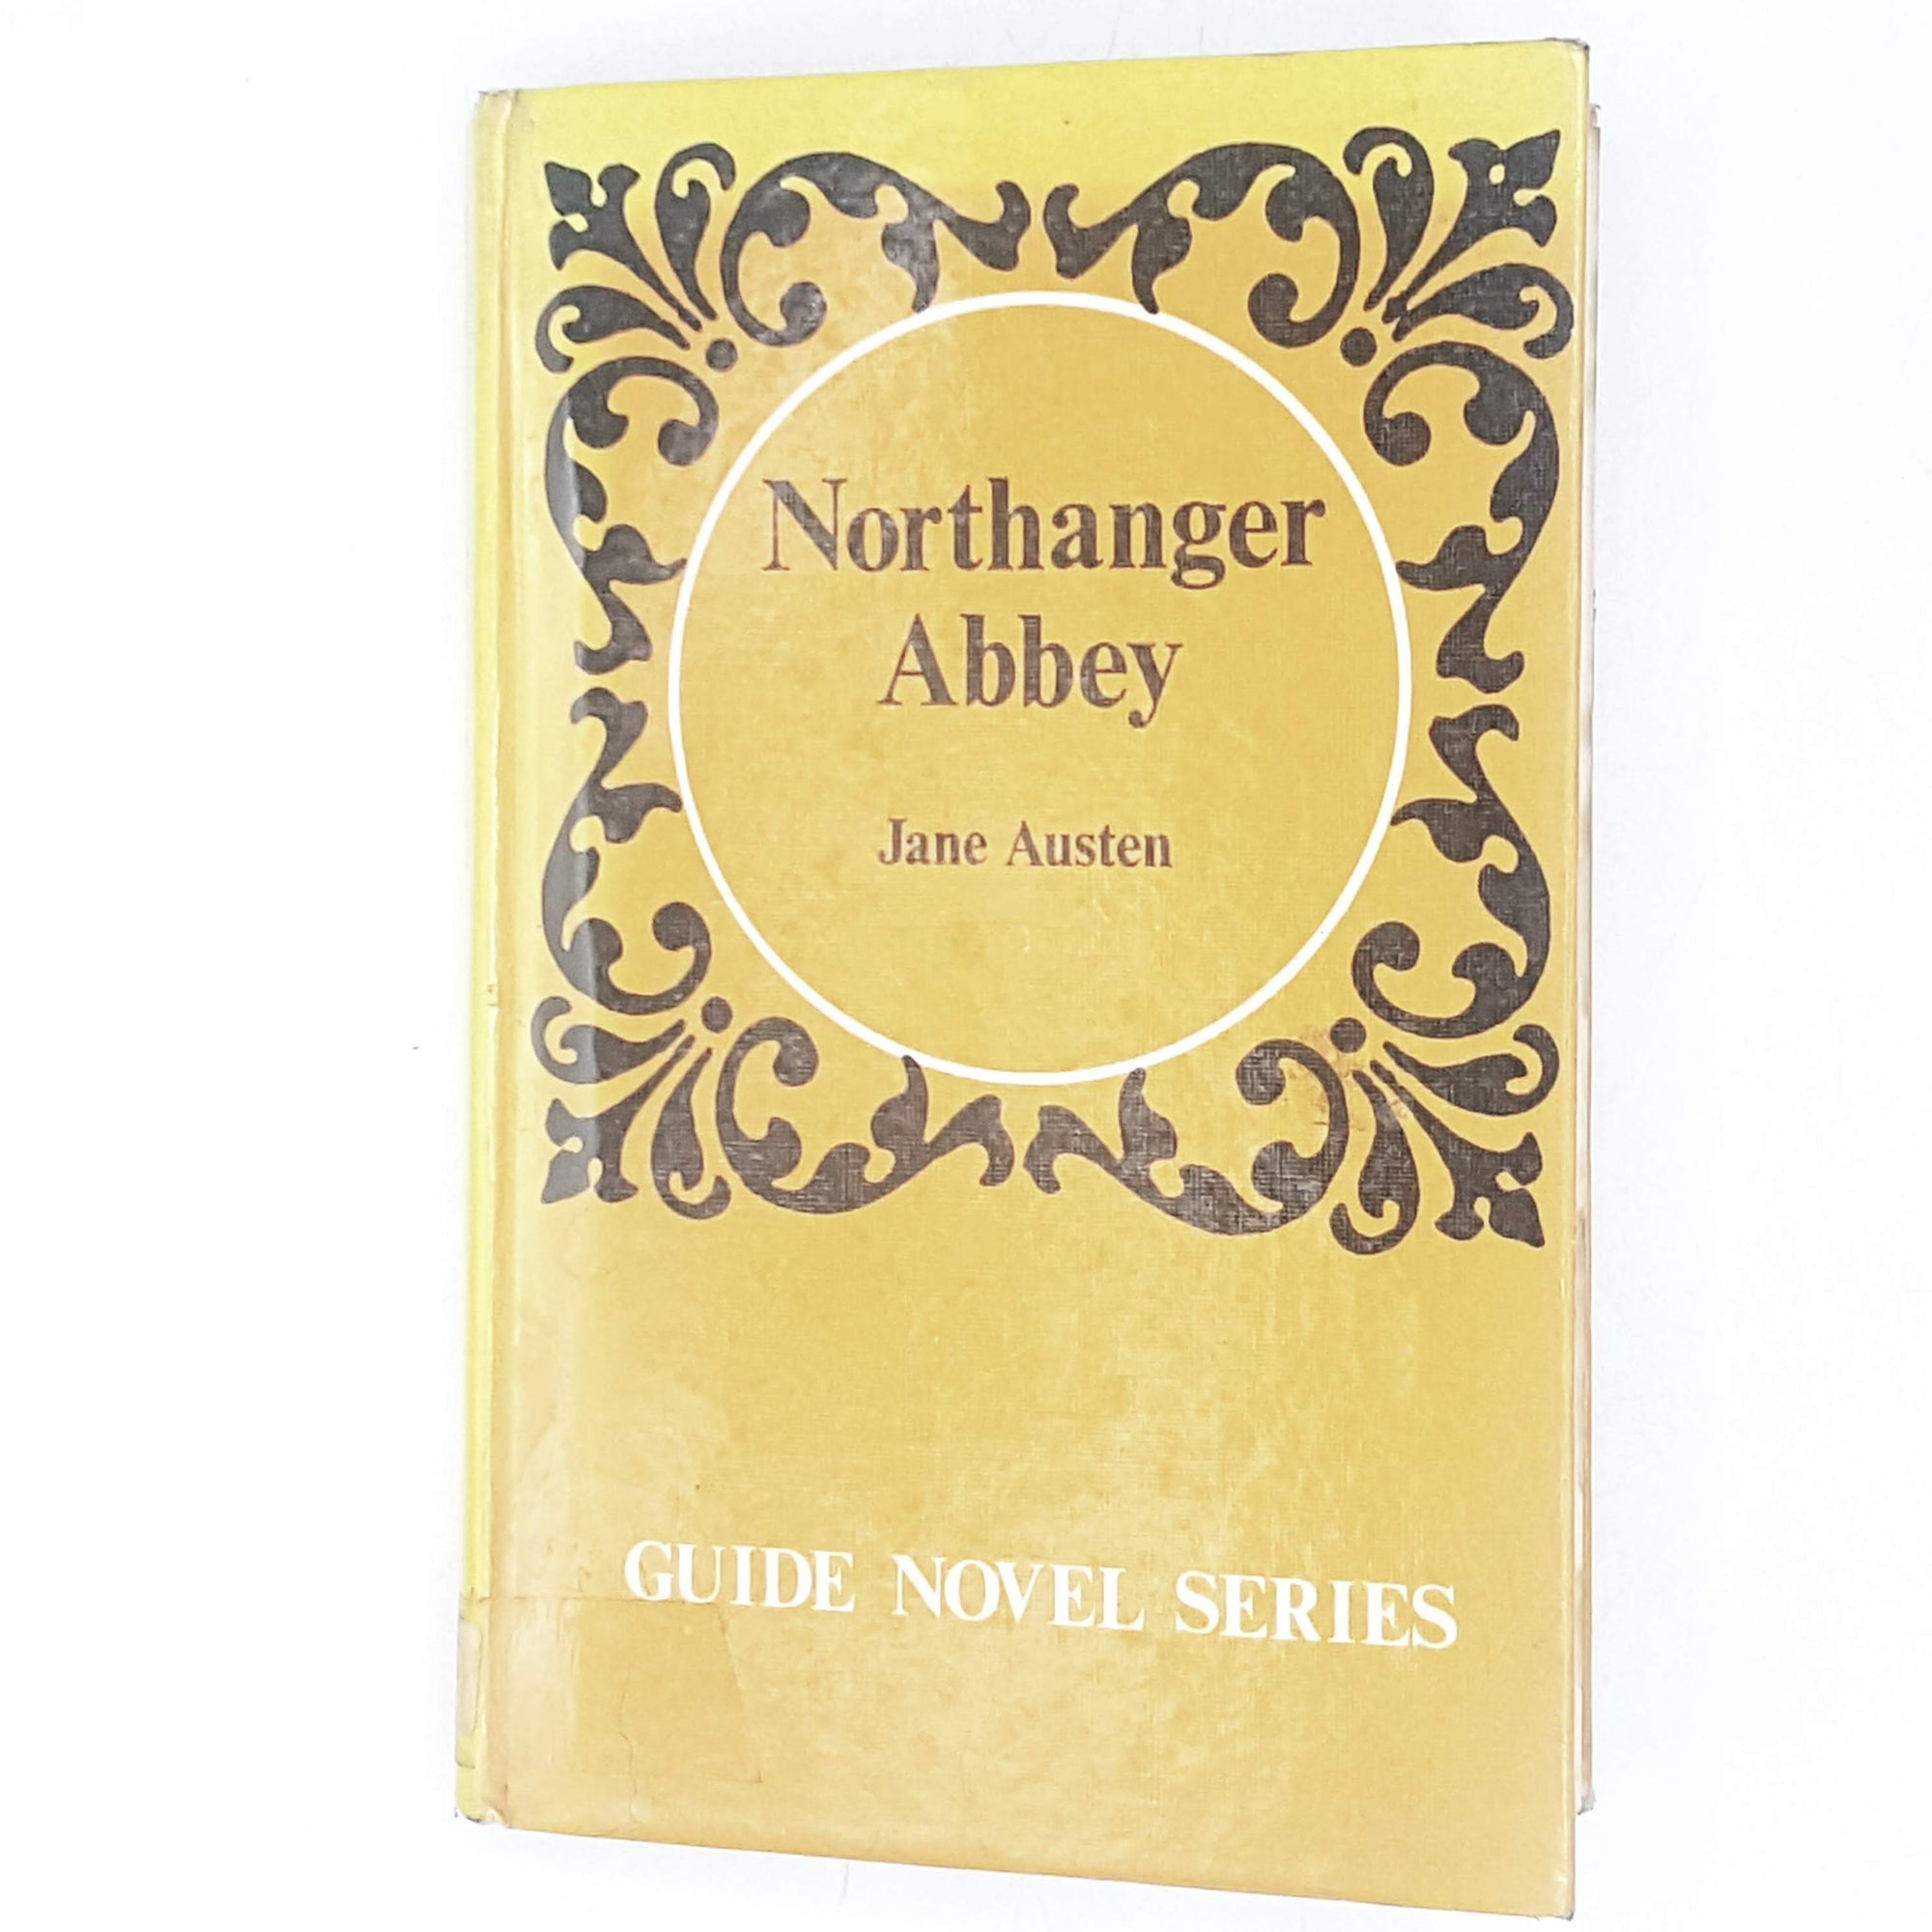 Northanger Abbey by Jane Austen 1974